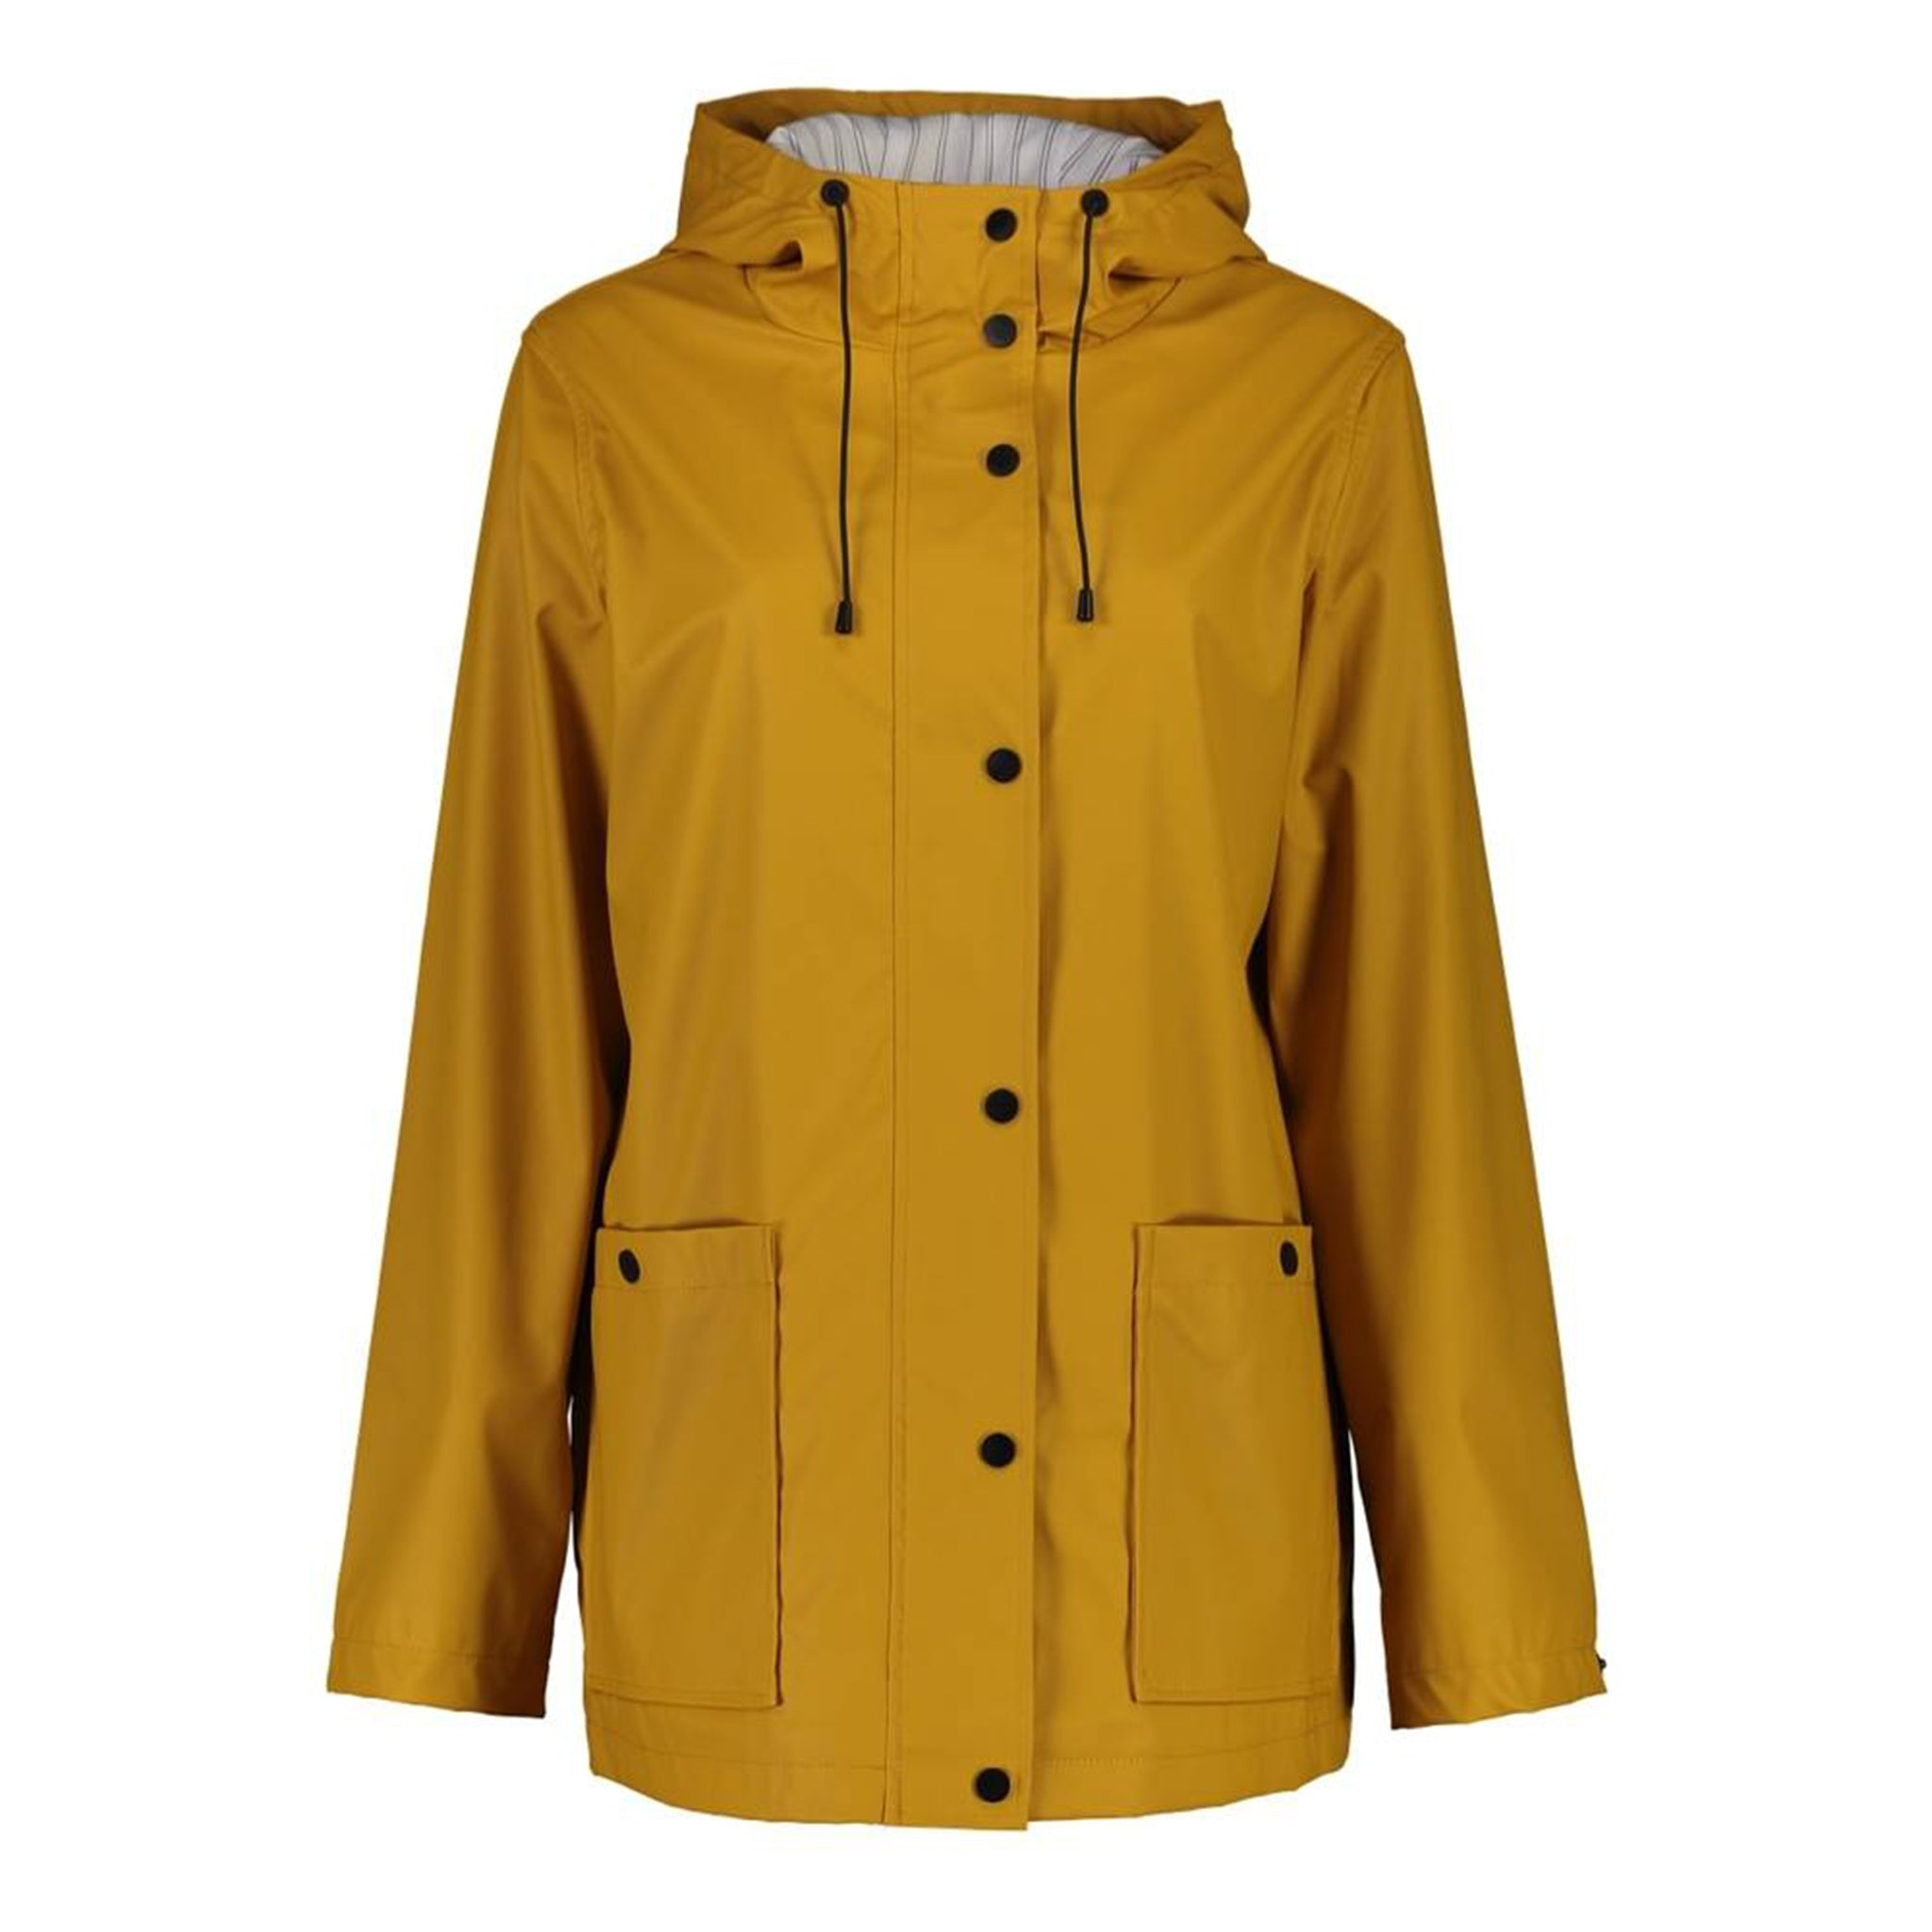 Ella Rain Jacket in Mustard